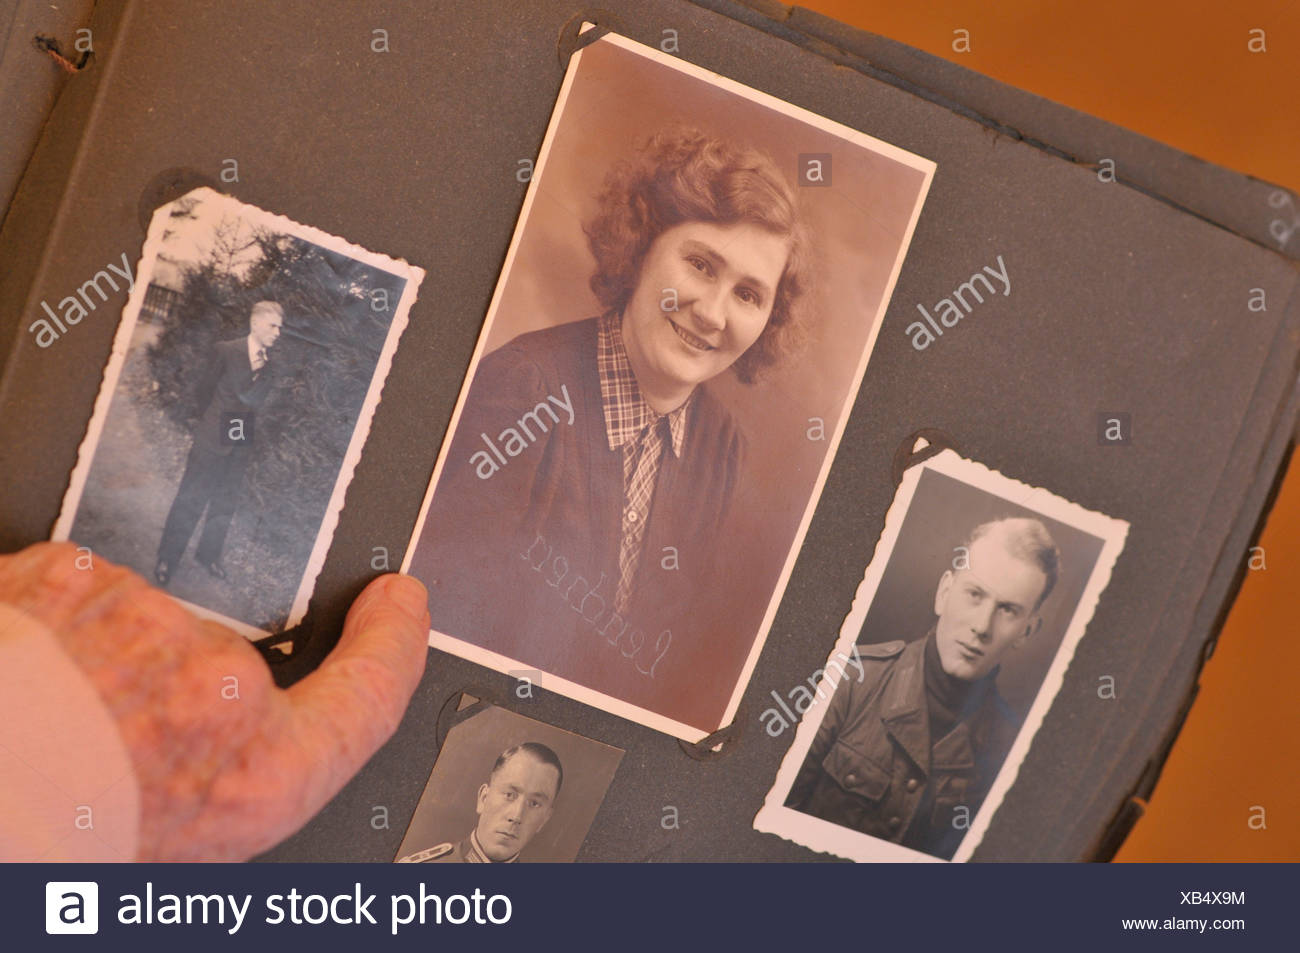 Elderly woman looking through photo album filled with old family portraits - Stock Image